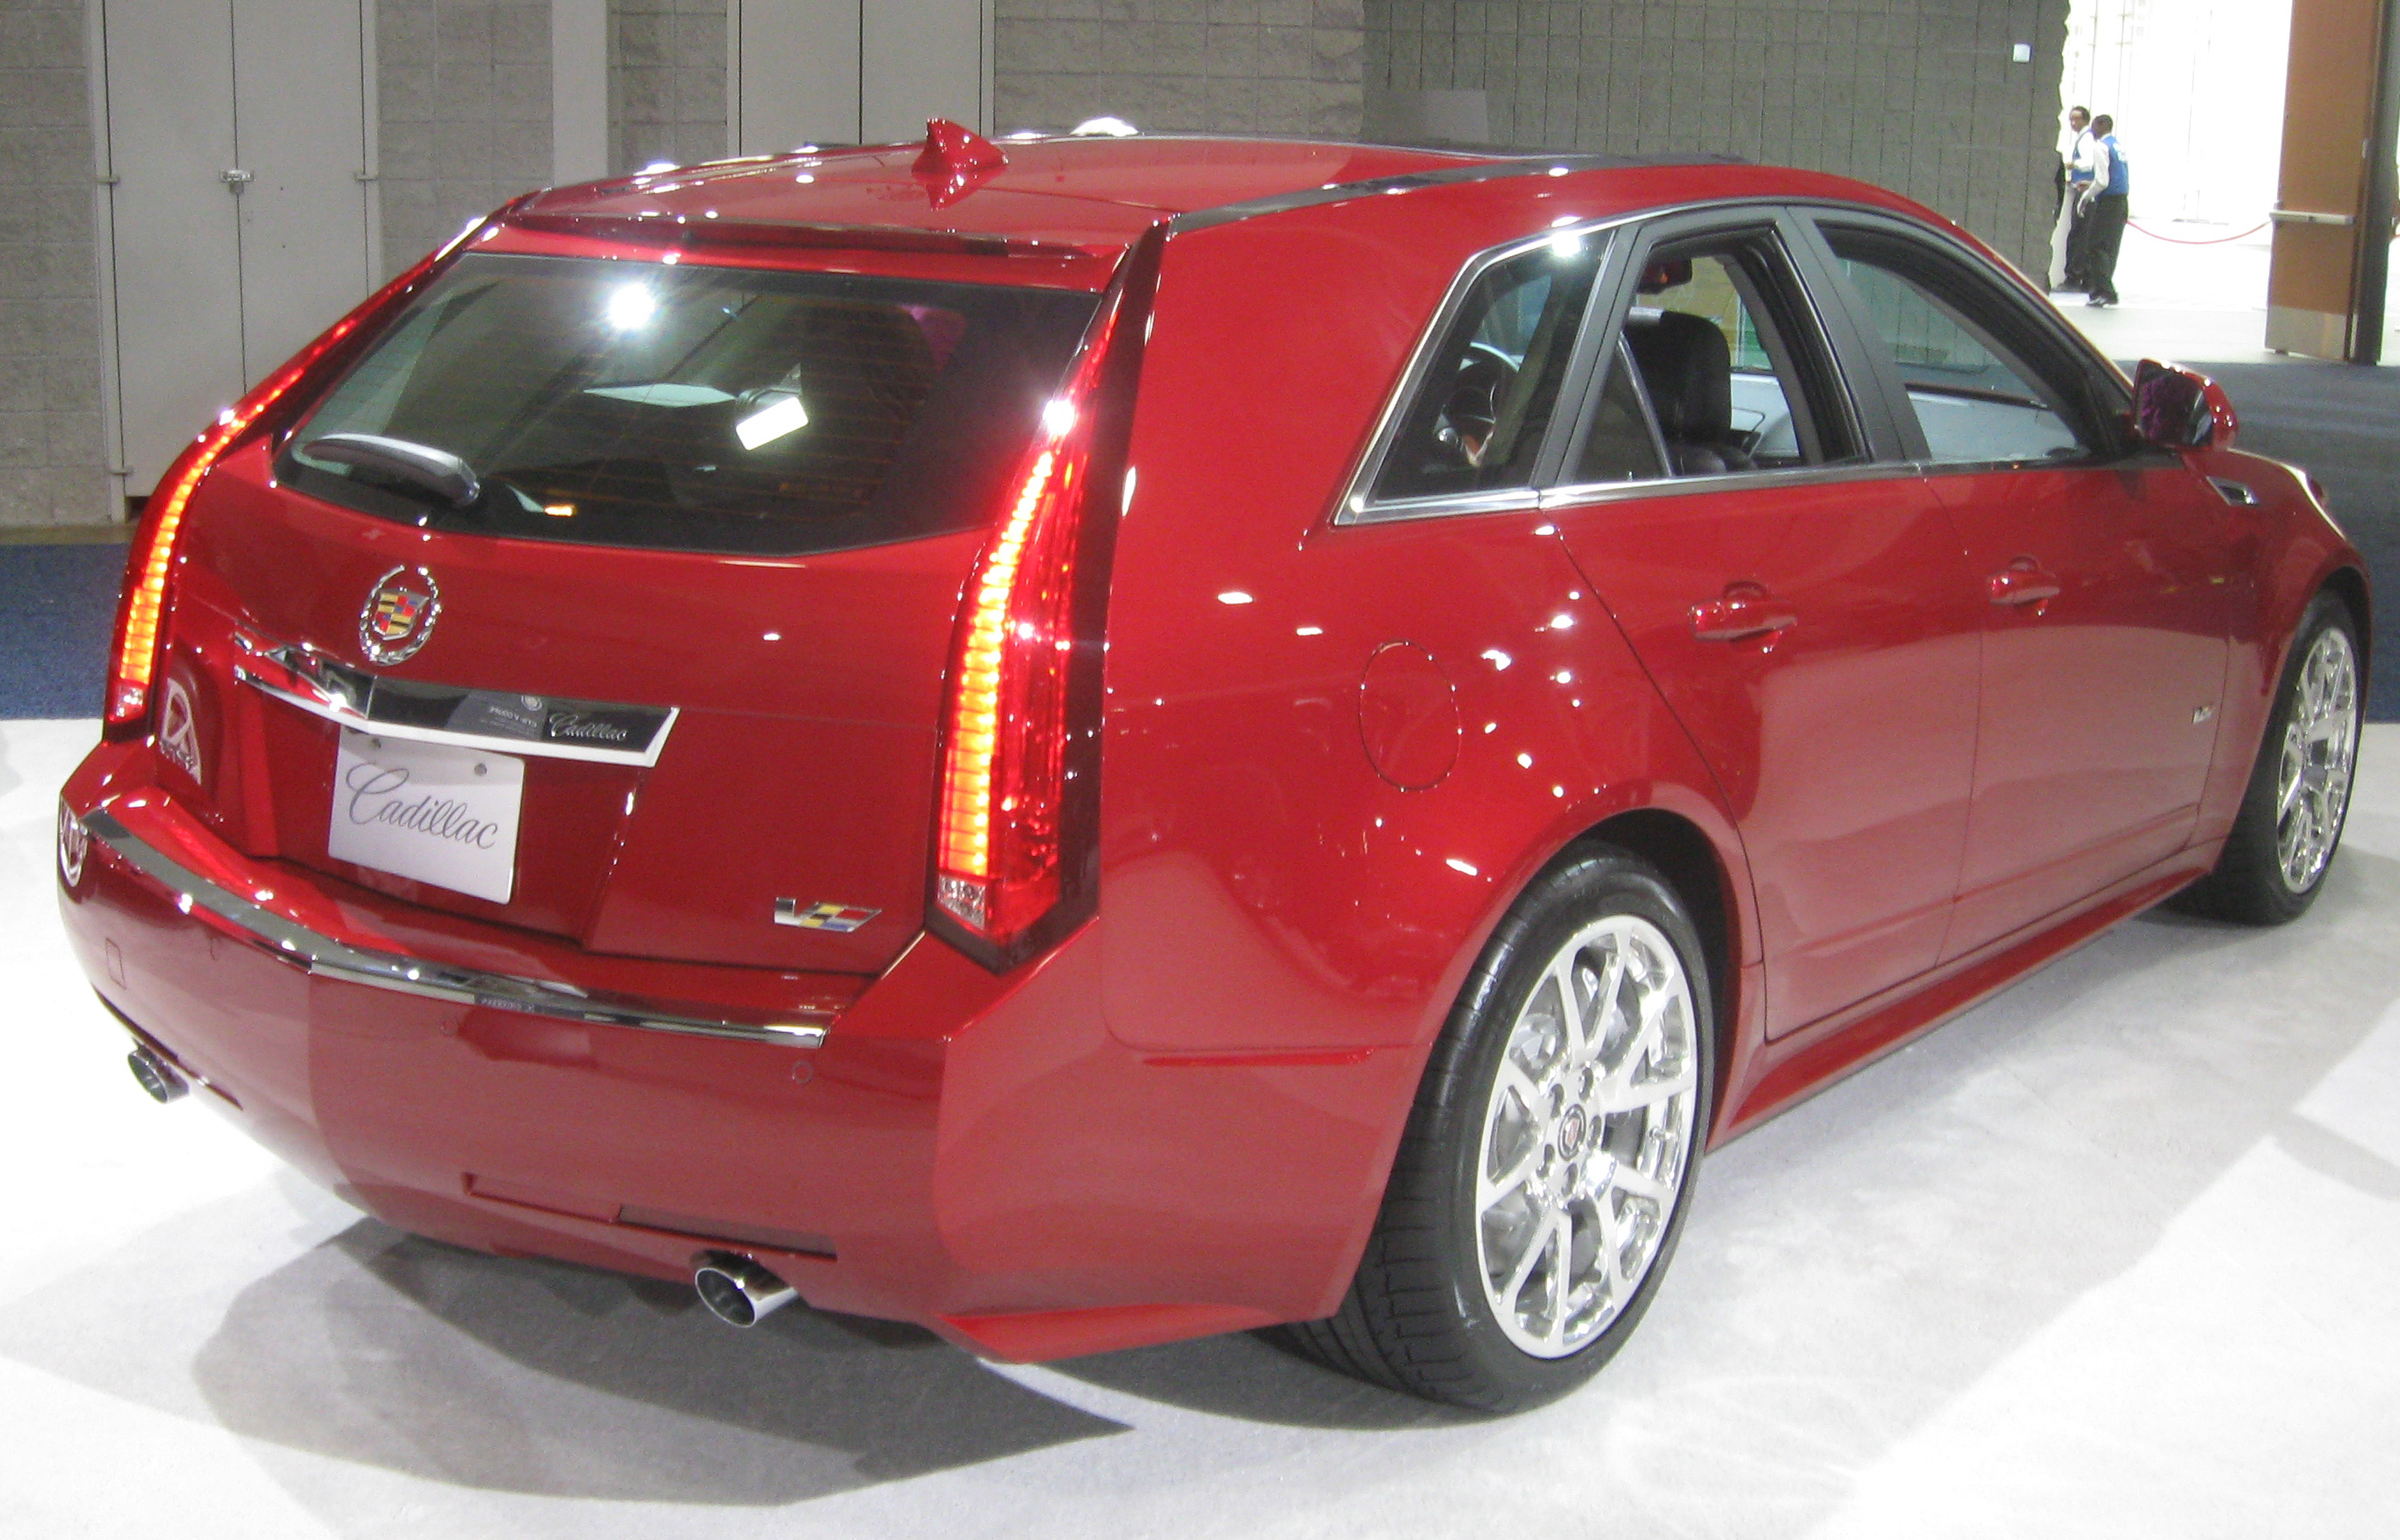 Cadillac CTS-V Wagon red #4